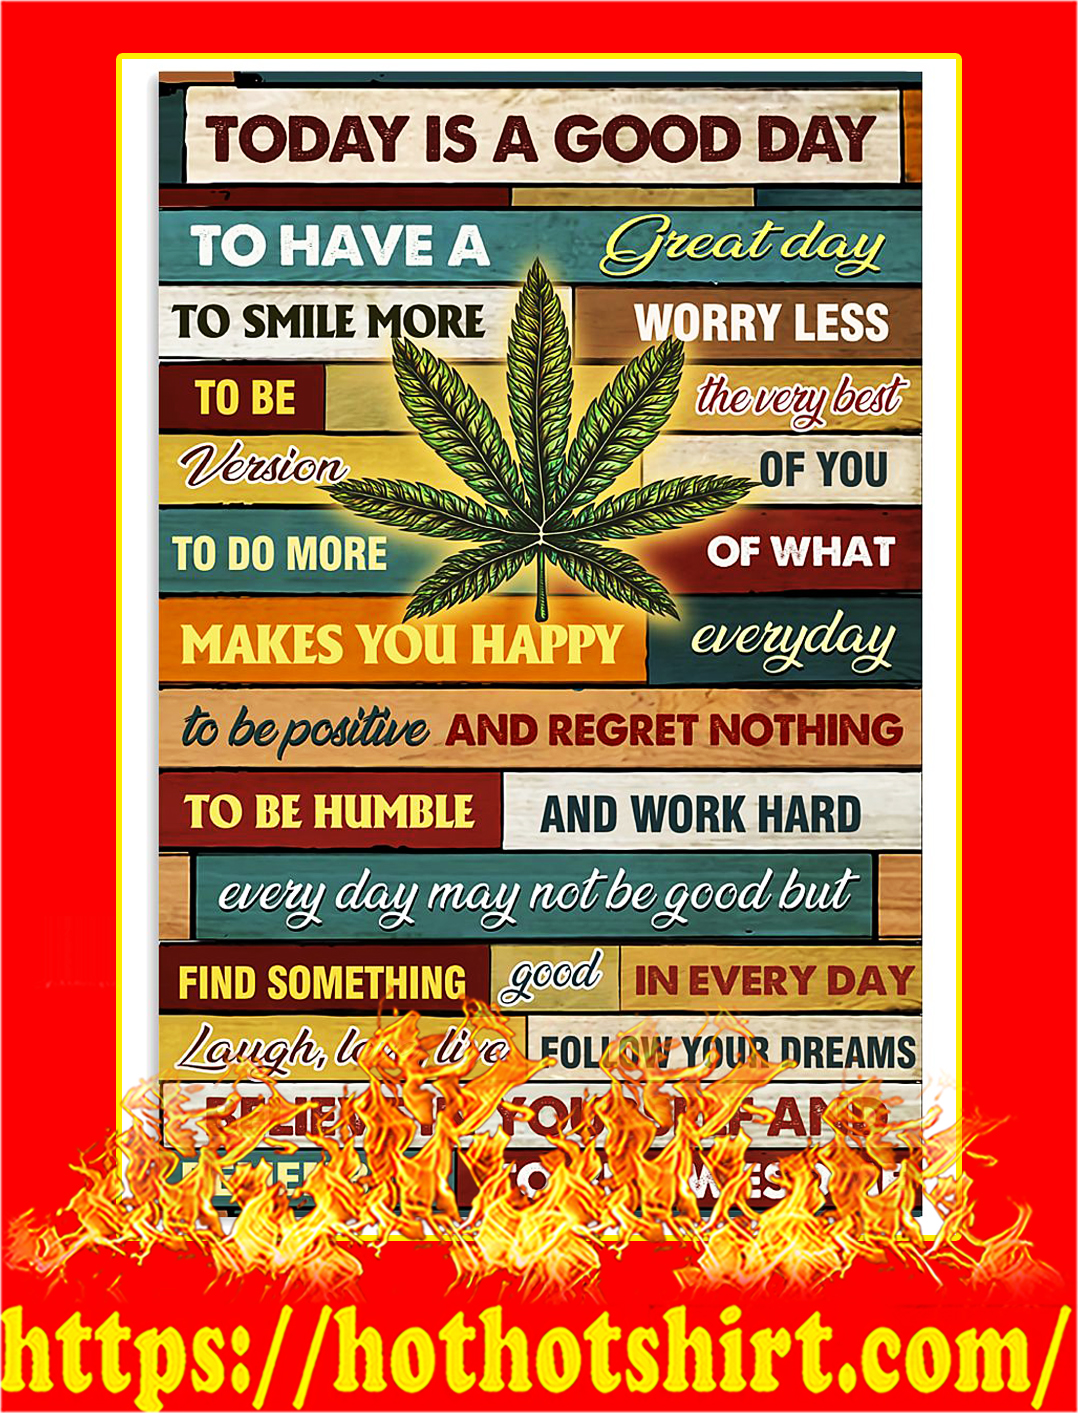 Weed cannabis today is a good day poster